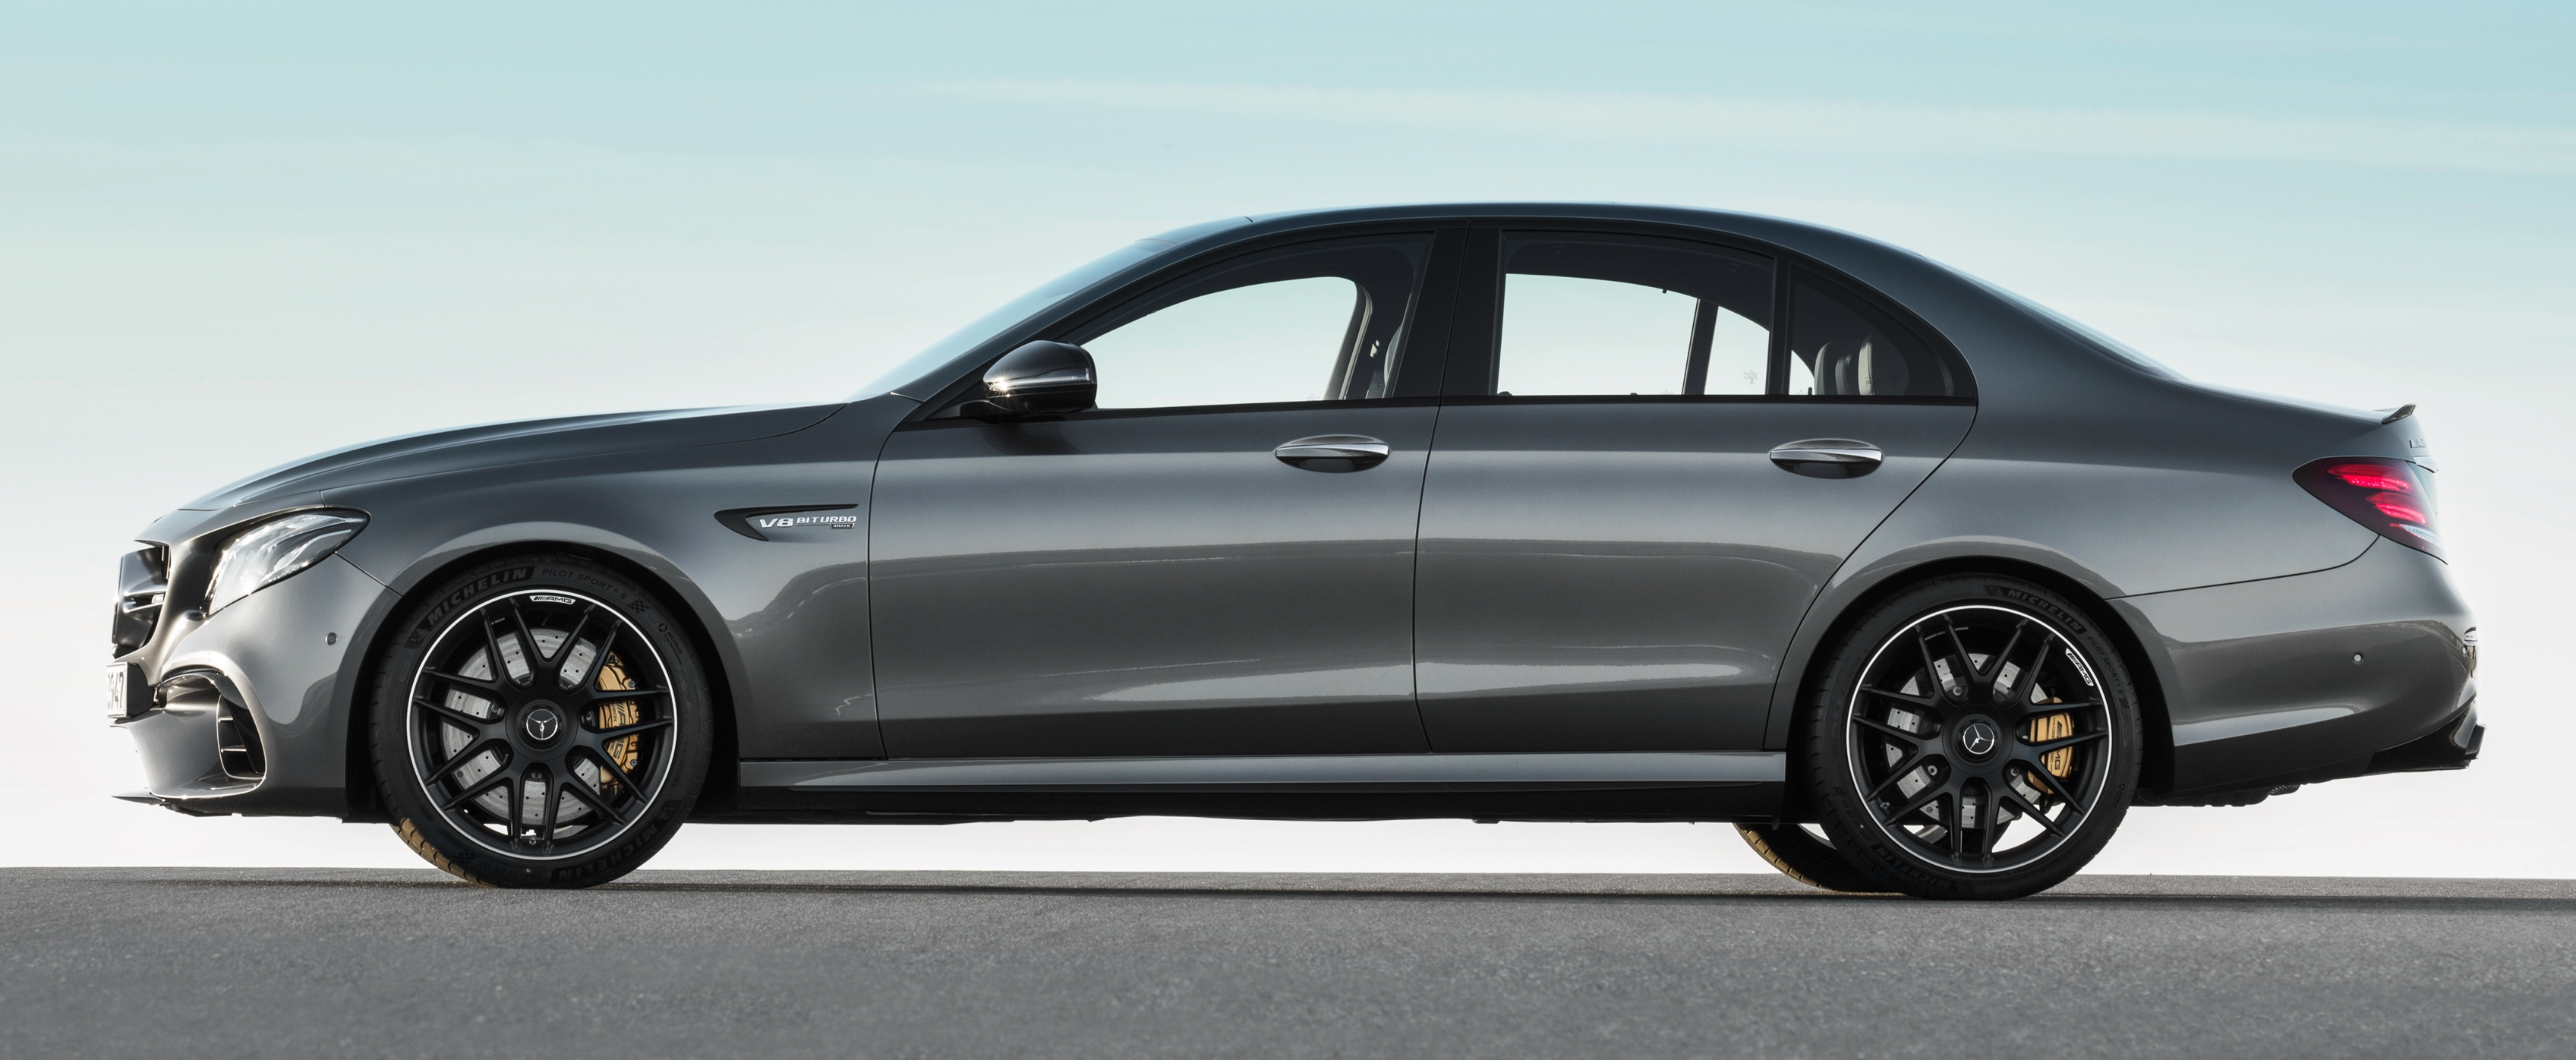 W213 Mercedes-AMG E 63 4MATIC and E 63 S 4MATIC unveiled ...